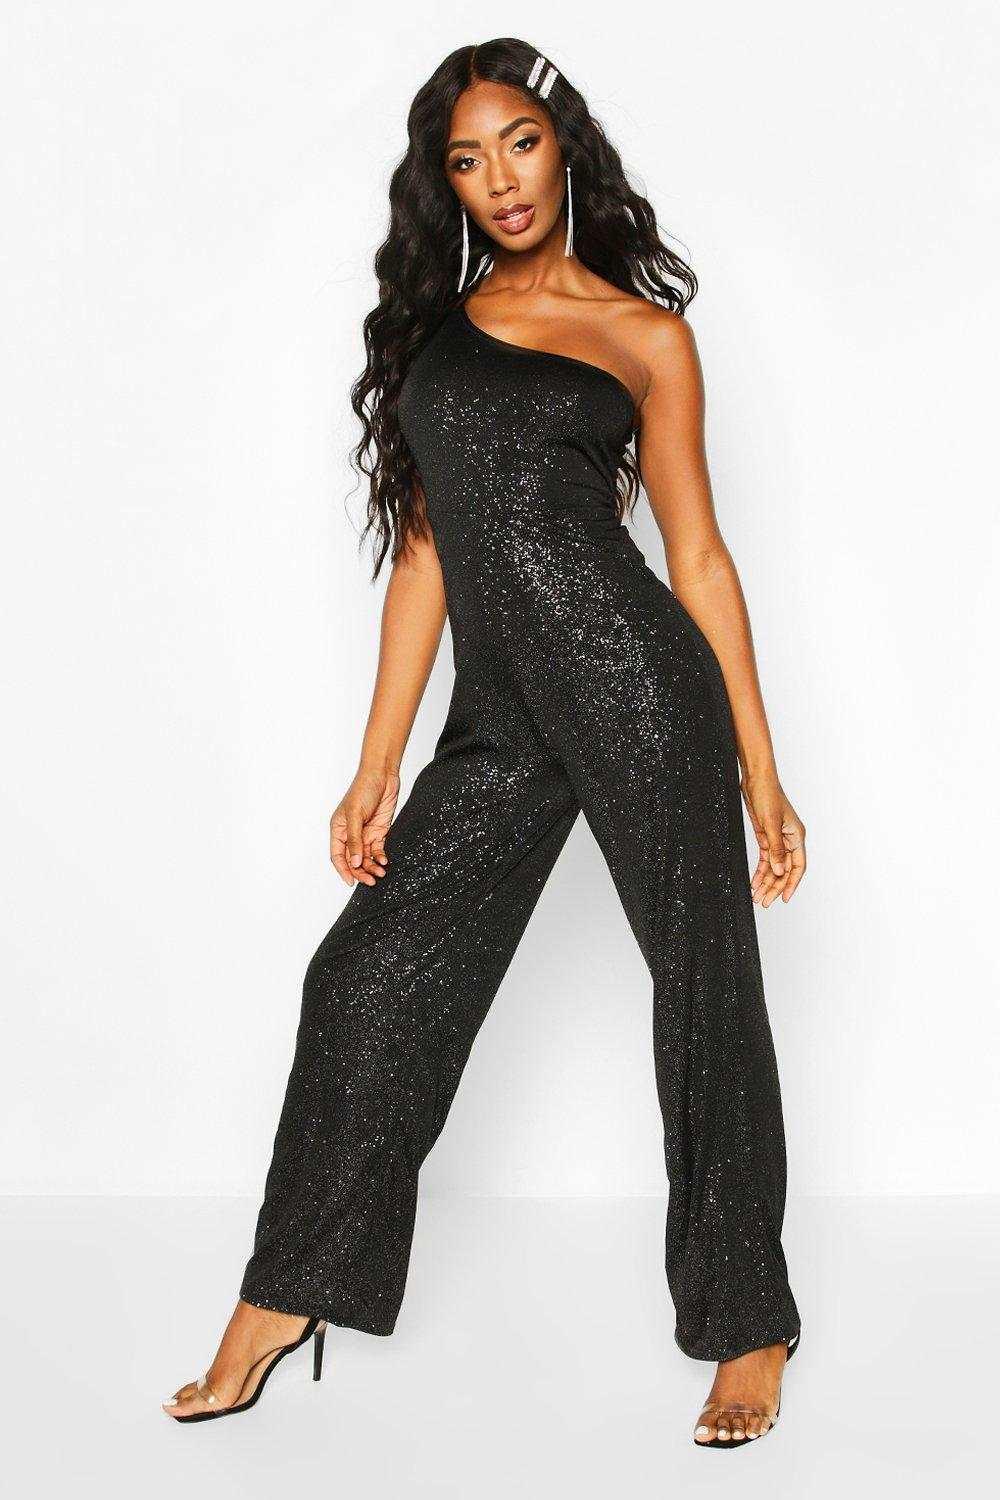 70s Jumpsuit | Disco Jumpsuits – Sequin, Striped, Gold, White, Black Womens Glitter One Shoulder Jumpsuit - black - 10 $42.00 AT vintagedancer.com